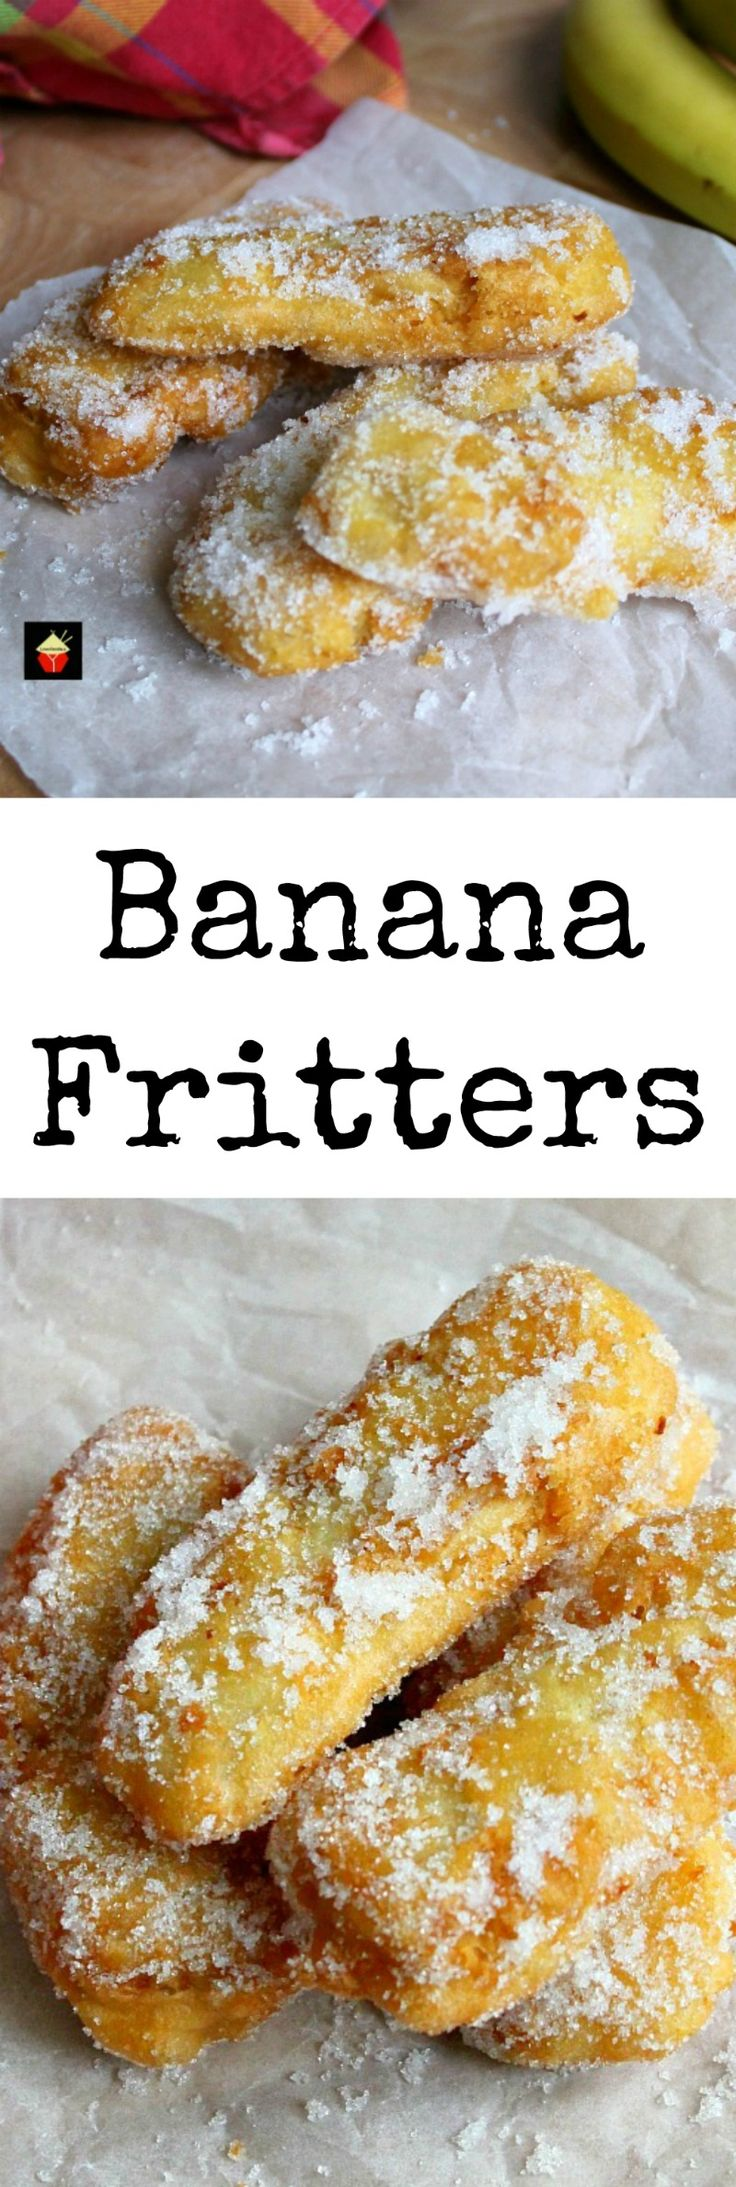 Banana Fritters. These are a lovely crispy treat, serve warm as they are or with some syrup drizzled over or a blob of ice cream! A great way to use up the odd banana too! Really quick and easy to make. | Lovefoodies.com via @lovefoodies